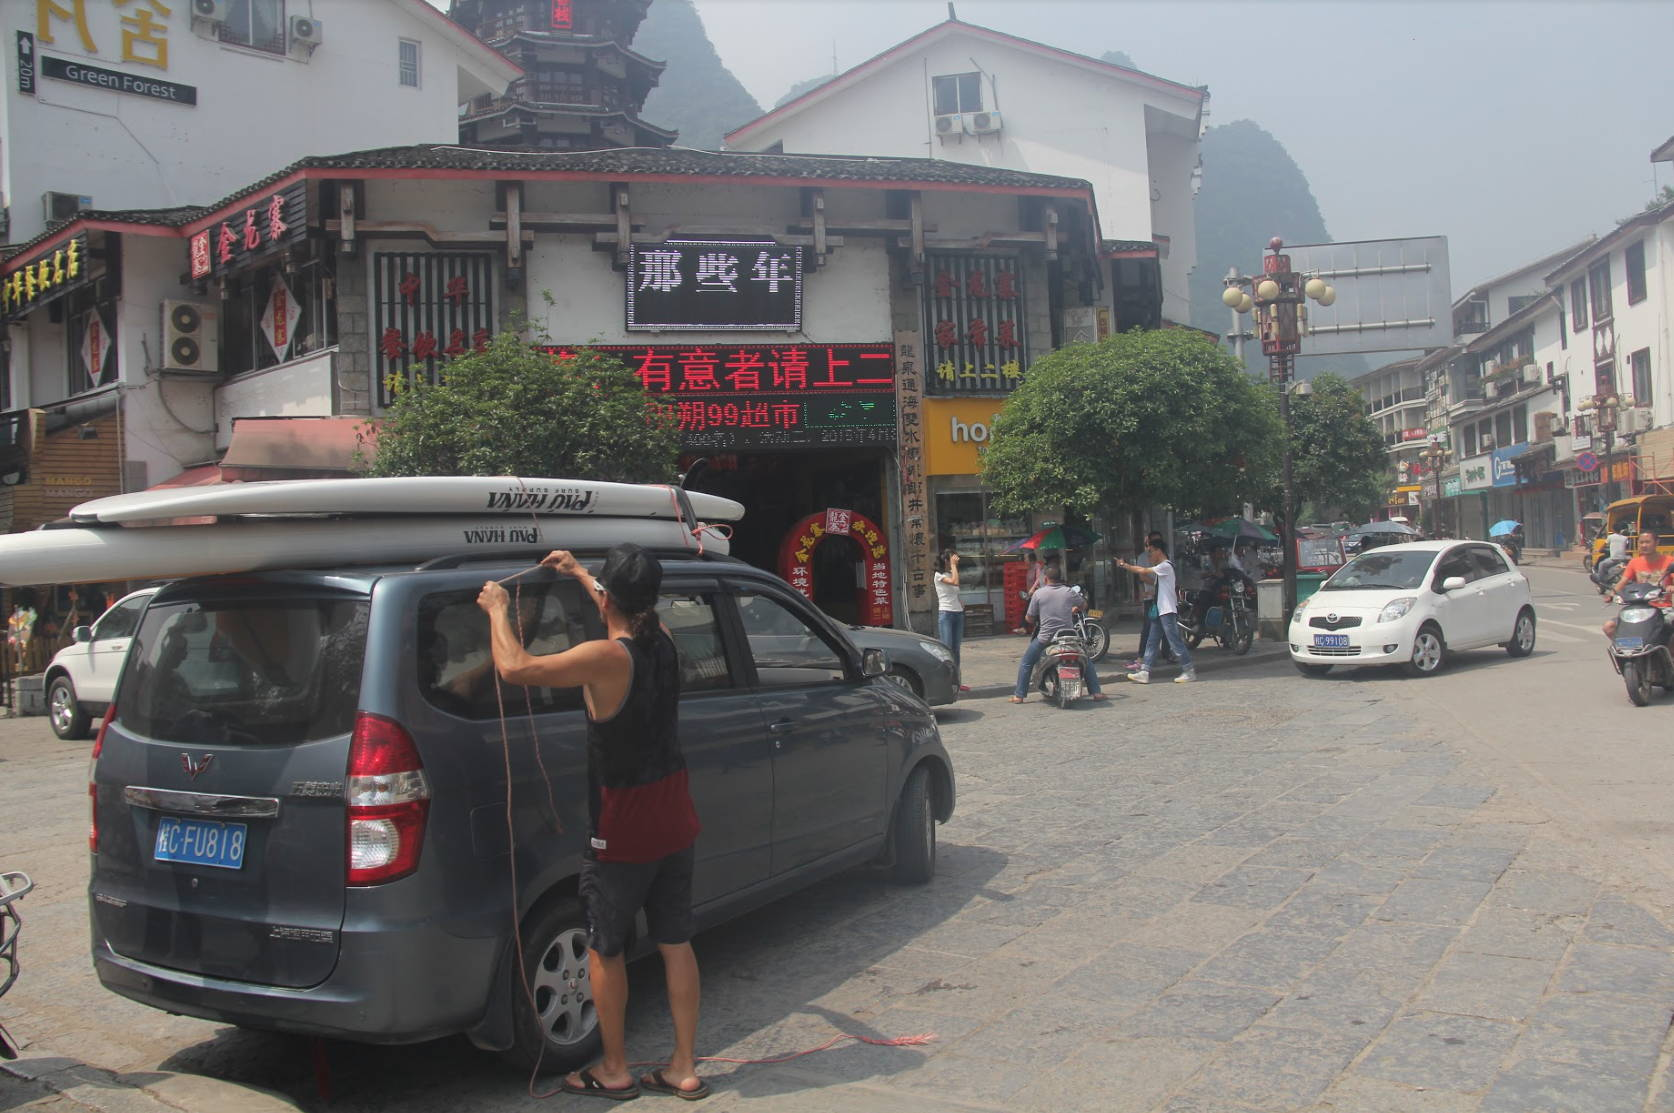 Todd rigging the boards in china that he got from the sup factory